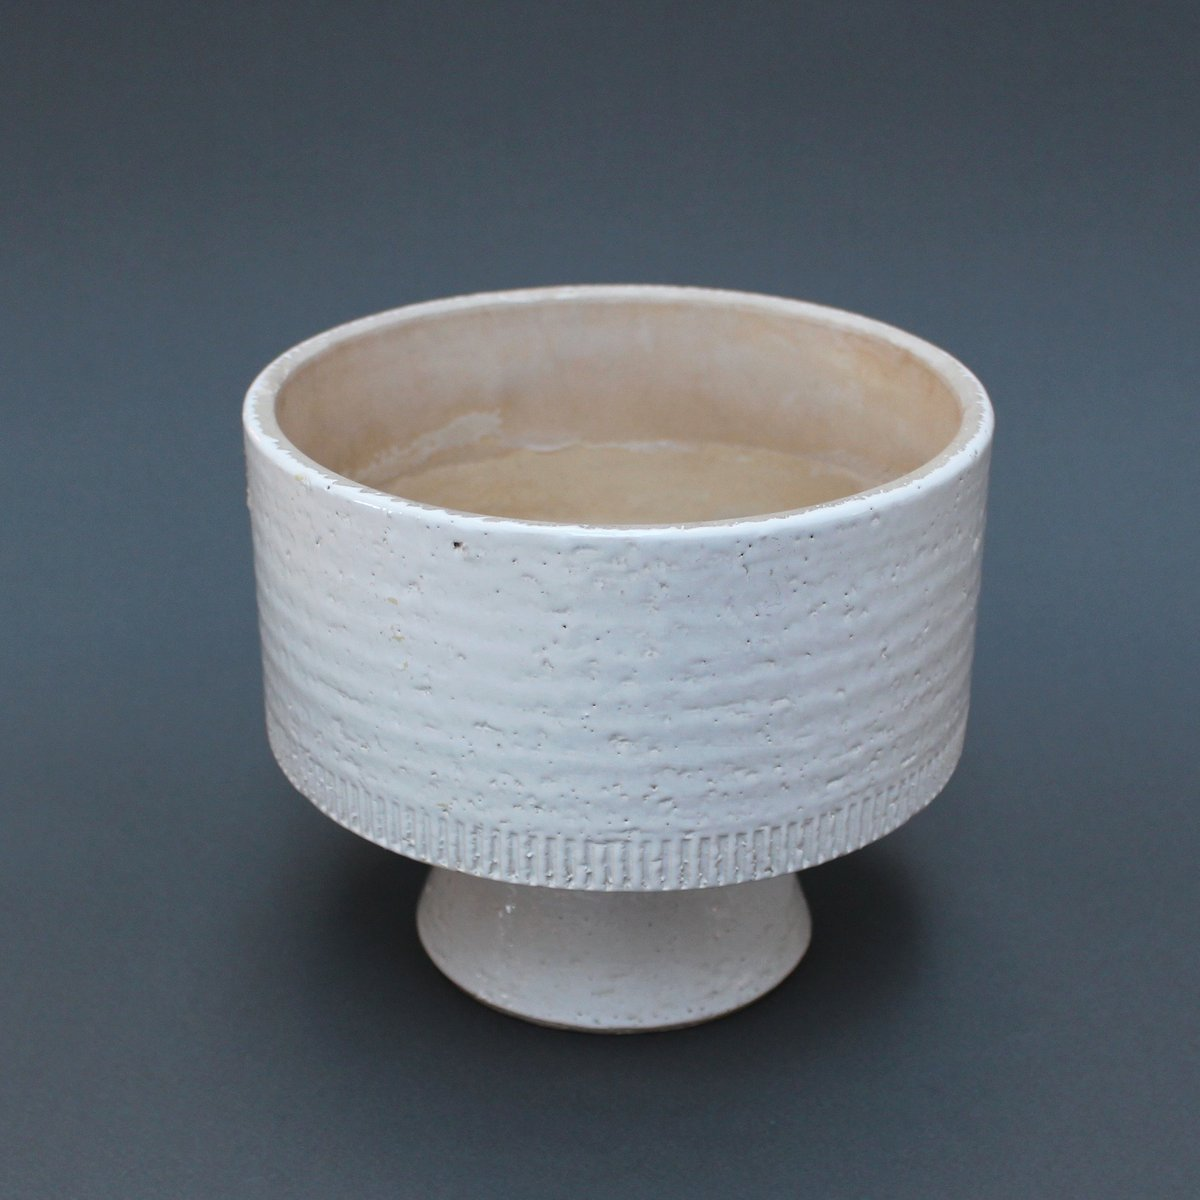 Mid century french ceramic plant pot 1960s for sale at pamono for 6 ceramic flower pots